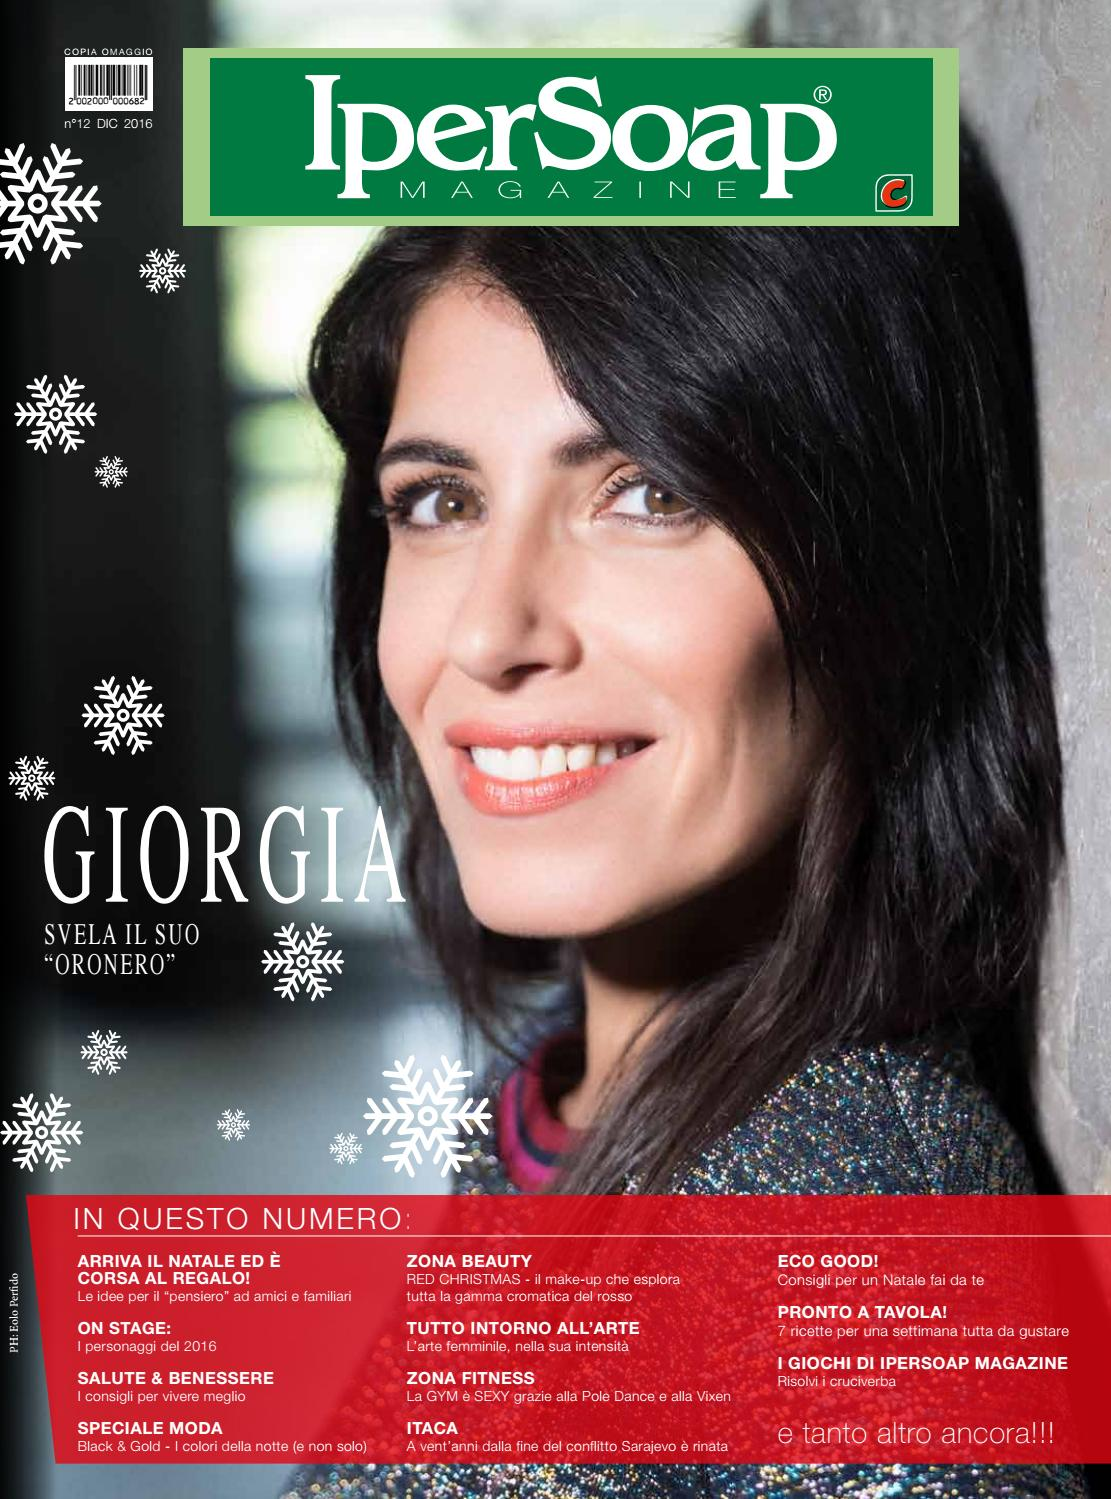 IperSoap Magazine dicembre 2016 by IperSoap Magazine - issuu d4632ce97220